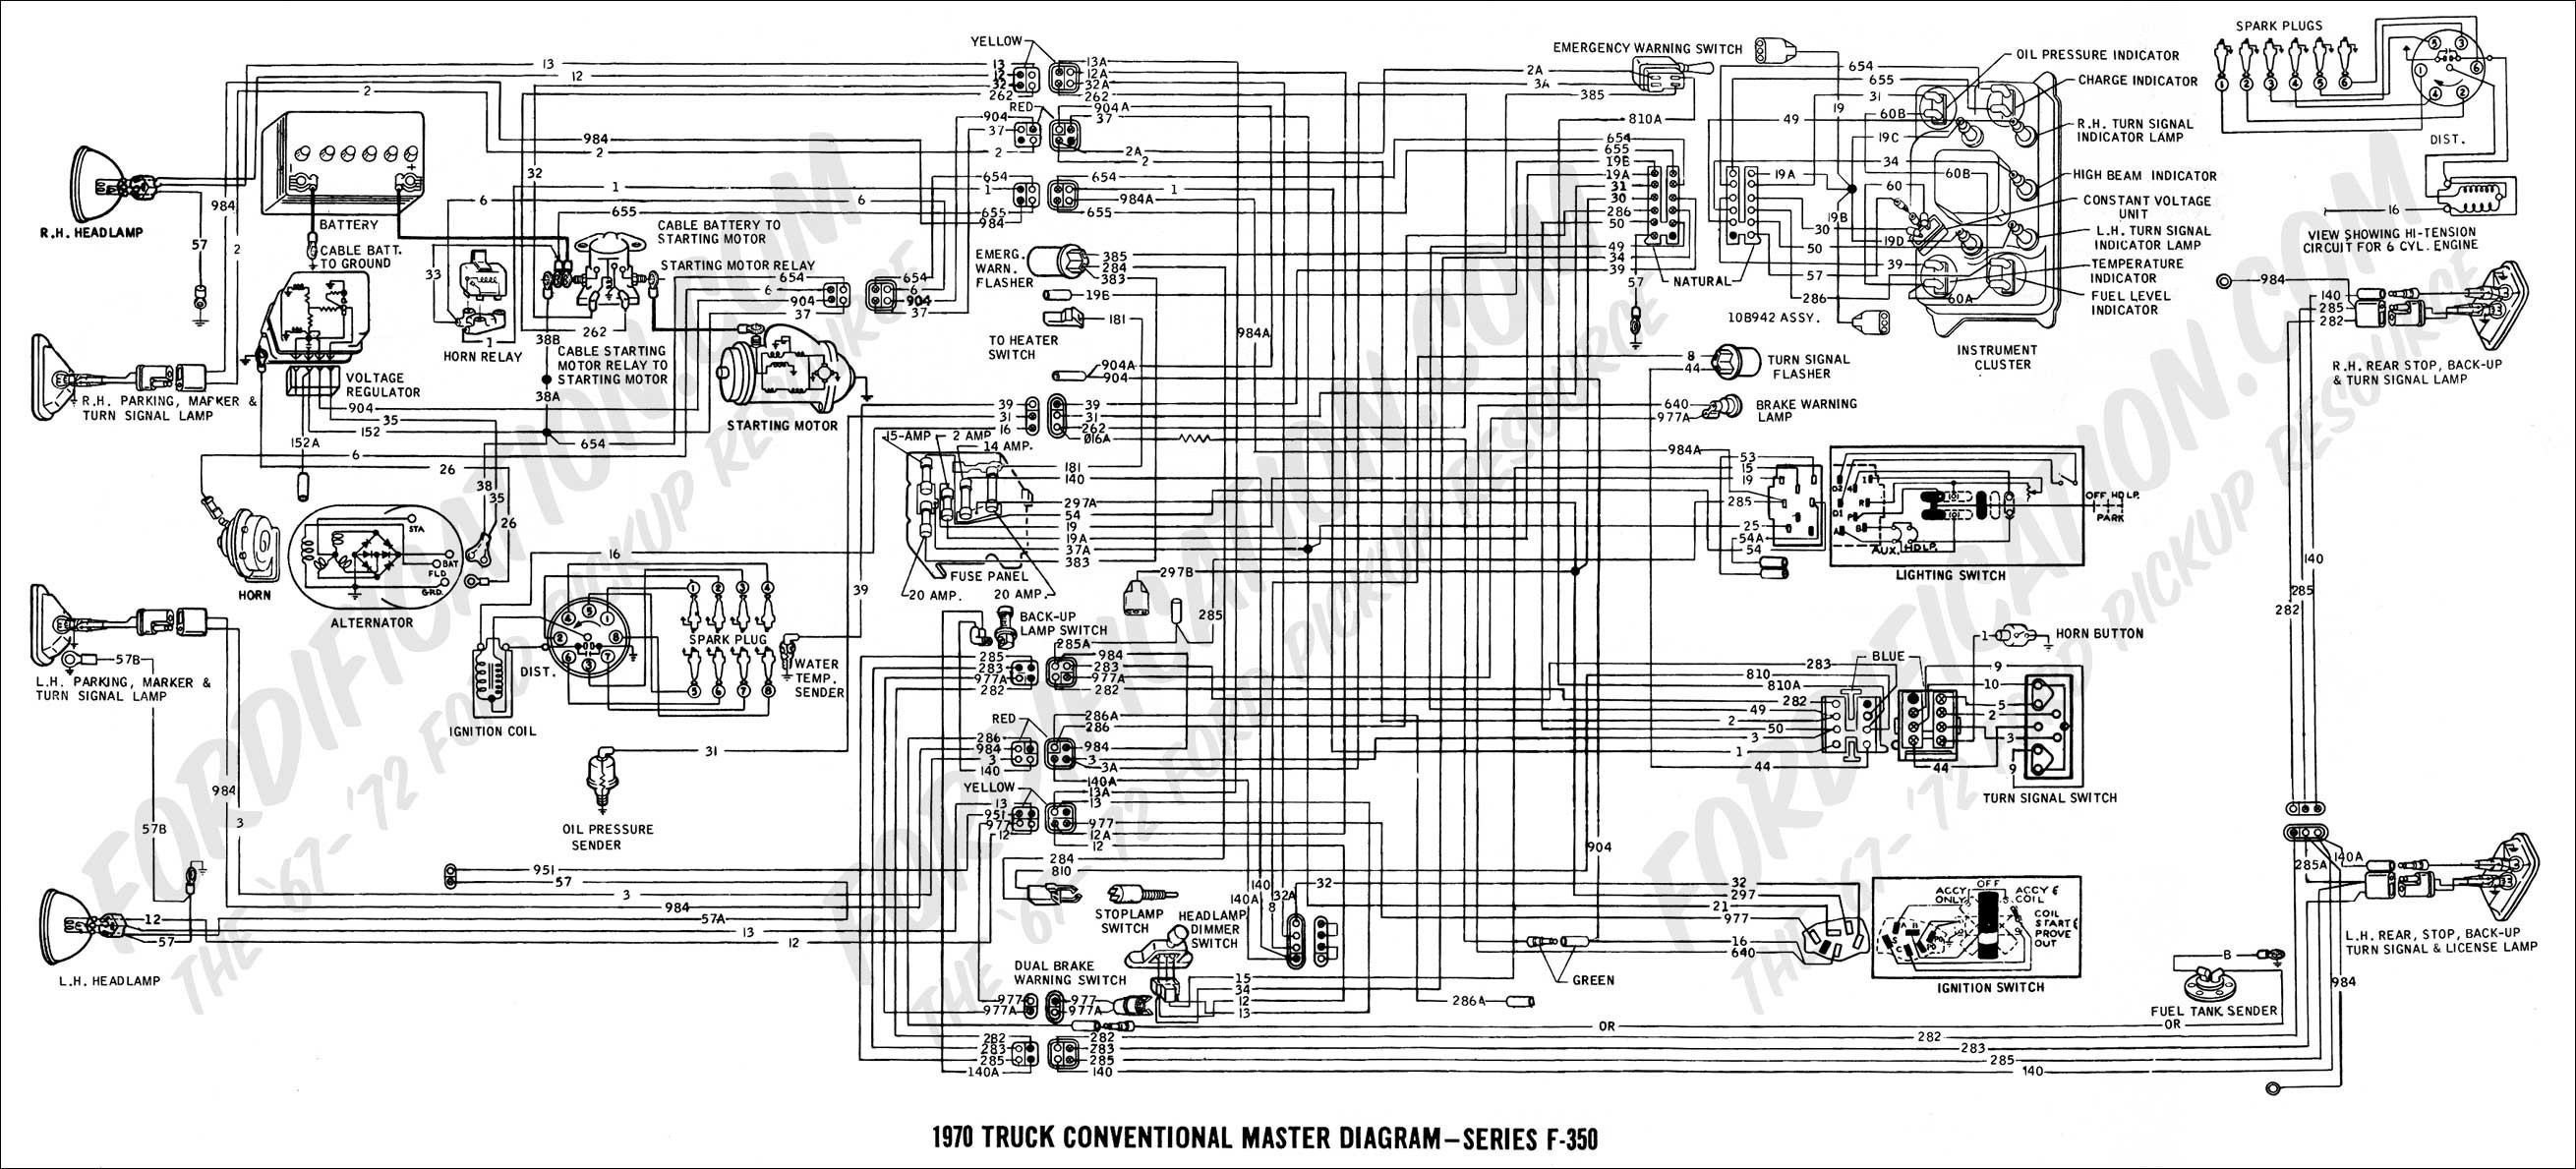 schematic wiring diagram sterling truck 2004 jeep grand cherokee trailer ford l on trucks wire heavy duty